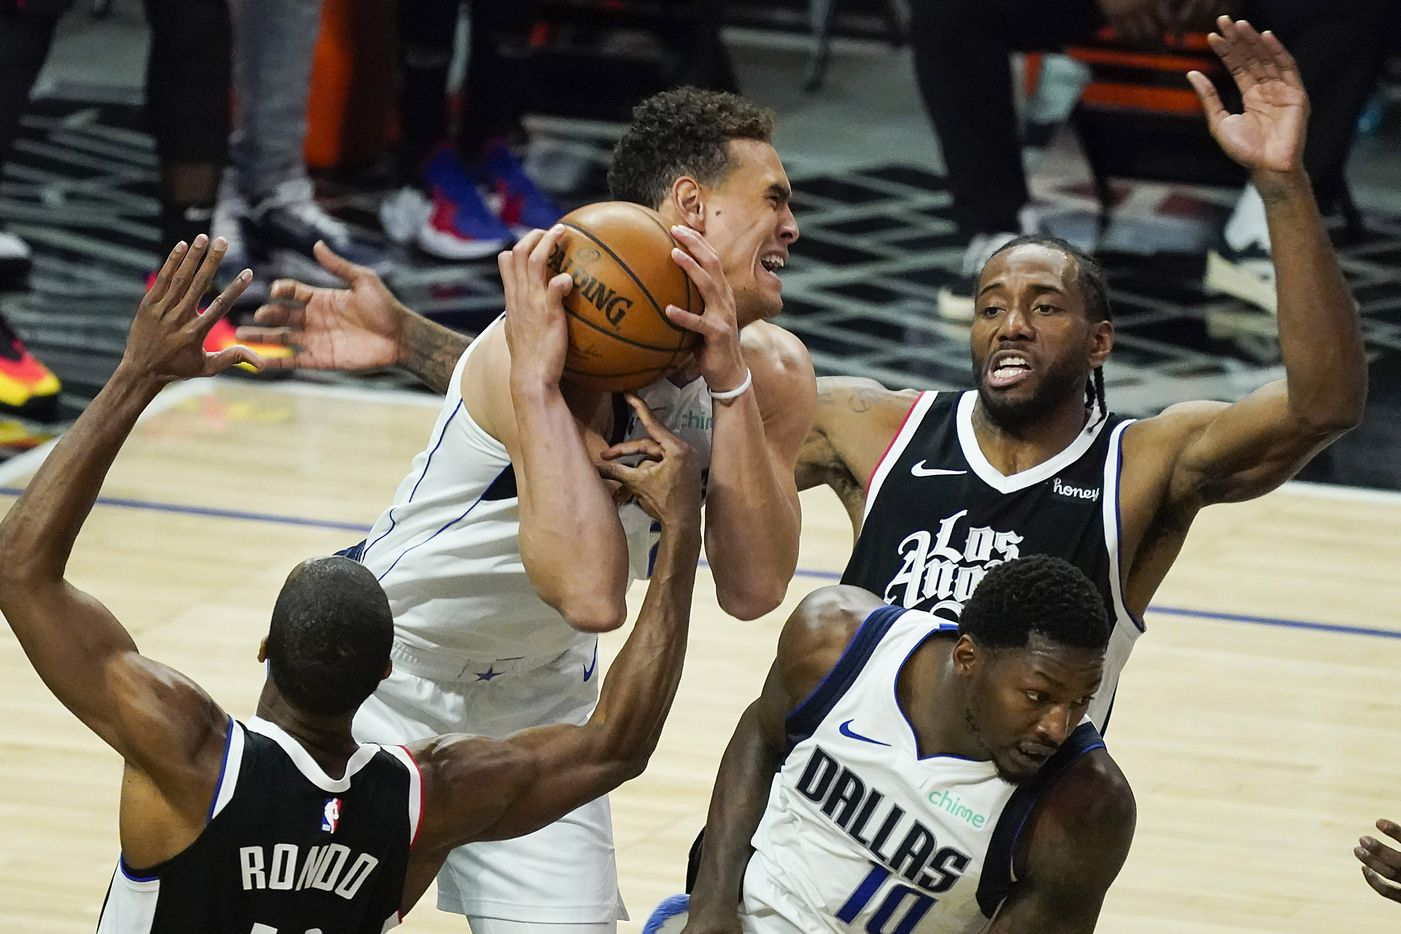 Dallas Mavericks center Dwight Powell (7) grabs a rebound from LA Clippers guard Rajon Rondo (4) and forward Kawhi Leonard (2) during the third quarter of an NBA playoff basketball game at the Staples Center on Wednesday, June 2, 2021, in Los Angeles.  (Smiley N. Pool/The Dallas Morning News)